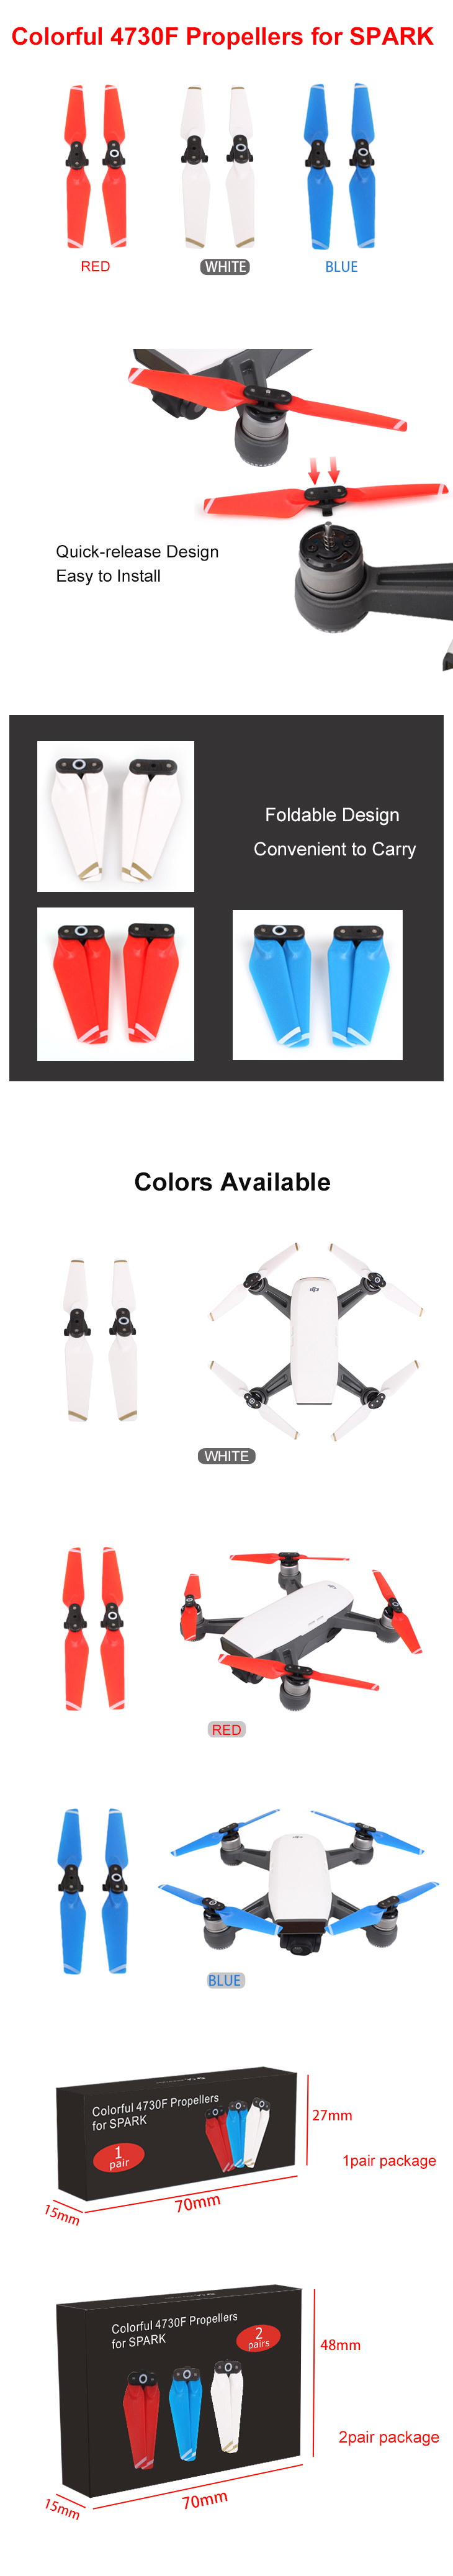 For Spark 2 Pairs/set Colorful 4370F Propellers Quick-release Folding Screw Propellers Blades For DJI Spark Accessories